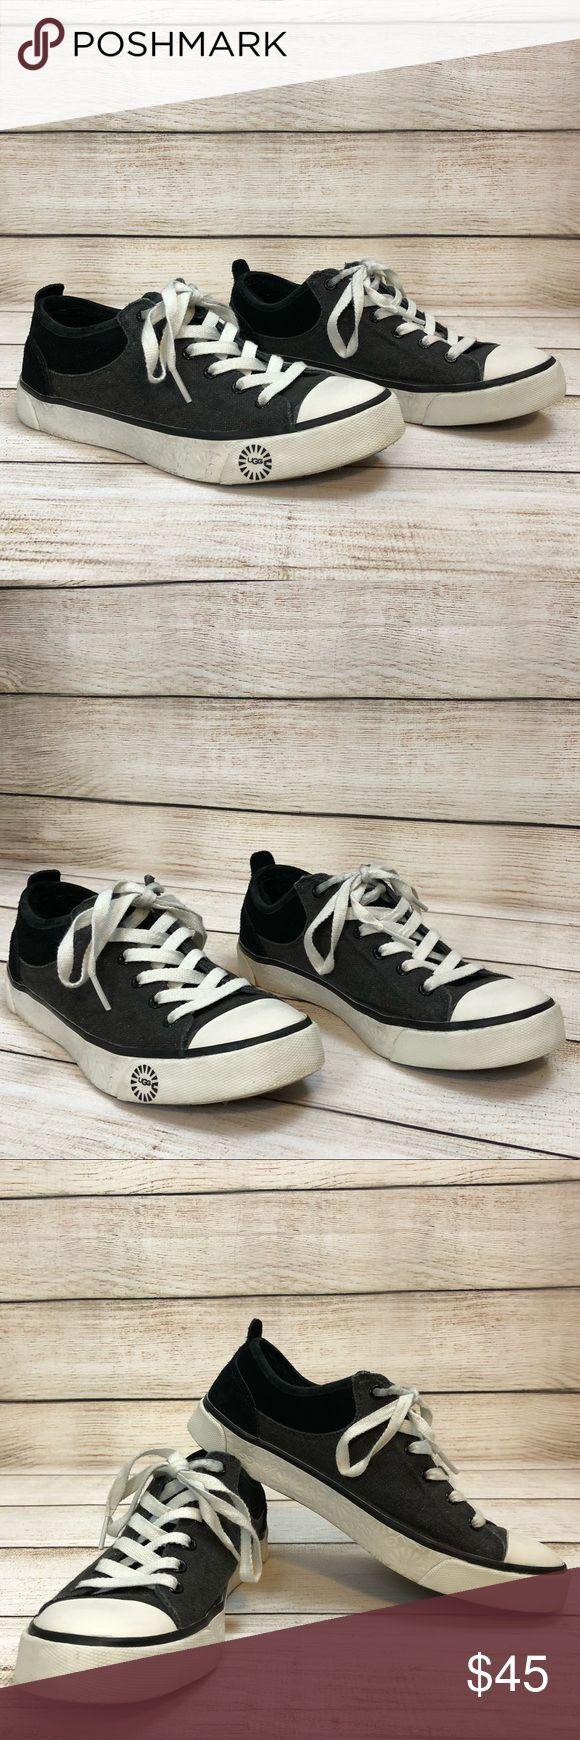 UGG • SNEAKERS Converse Style UGG • SNEAKERS Converse Style   Size 6.5  Charcoal and black  Preloved excellent condition UGG Shoes Sneakers